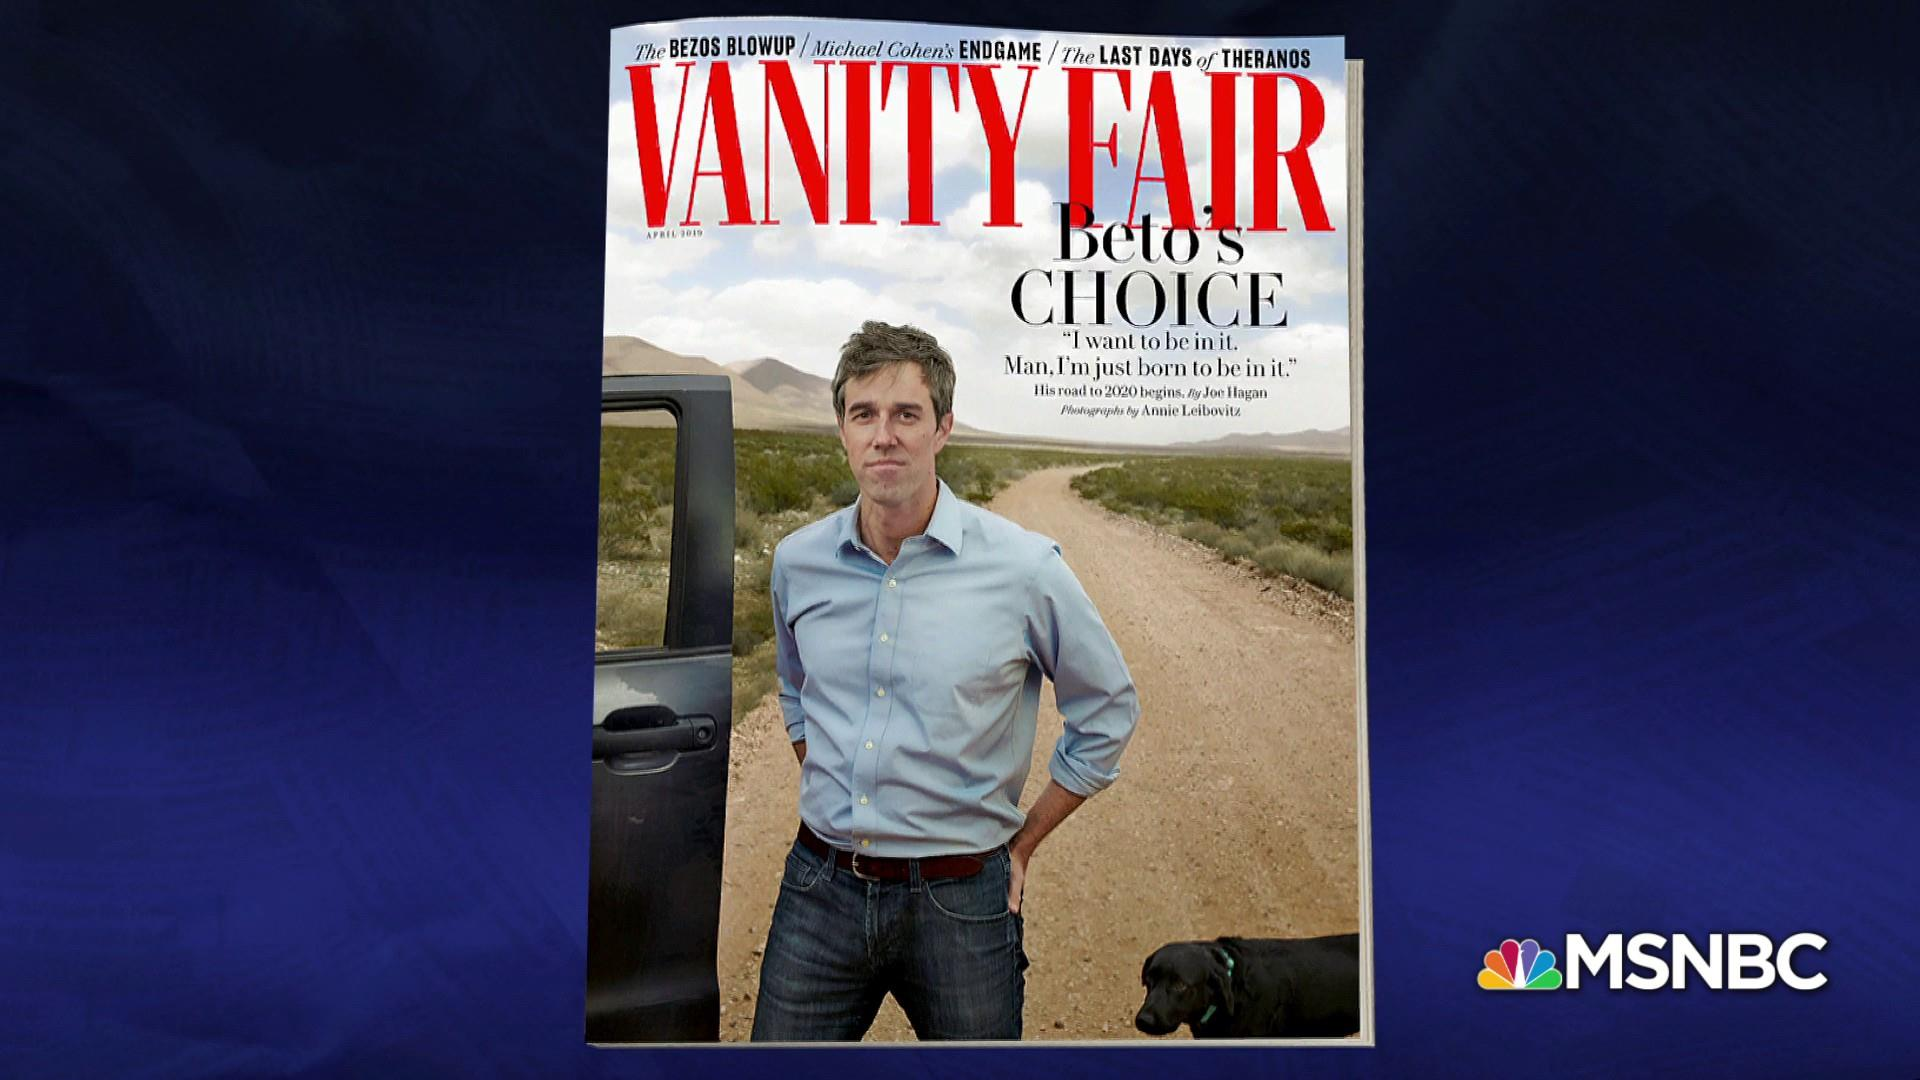 Beto O'Rourke: 'I'm just born to be in it'